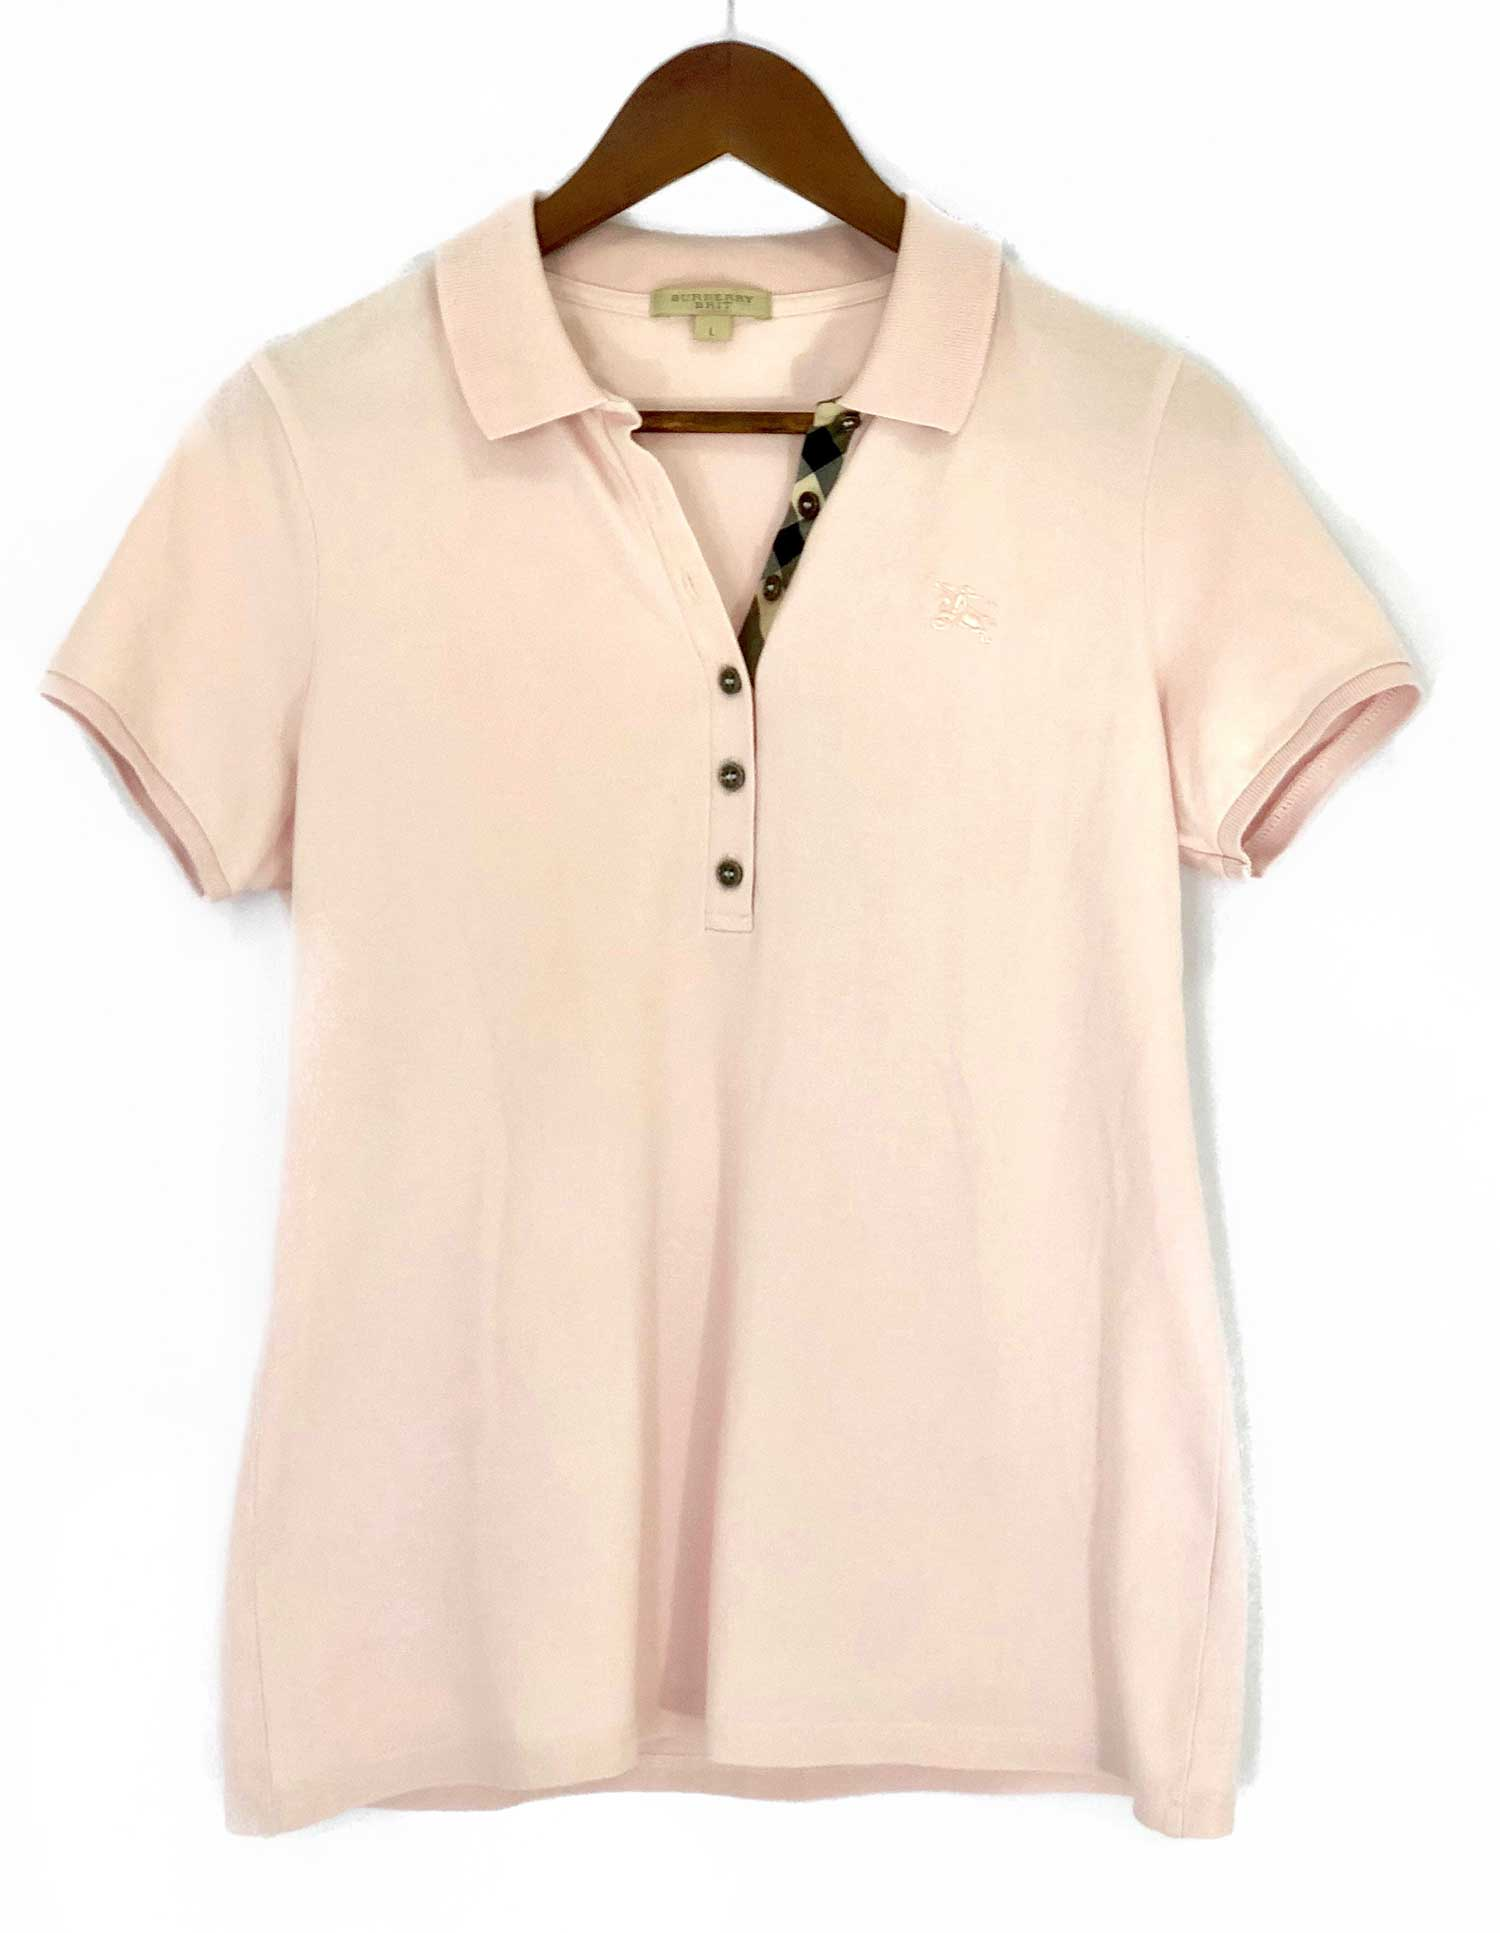 Camiseta Polo Burberry L Rosa